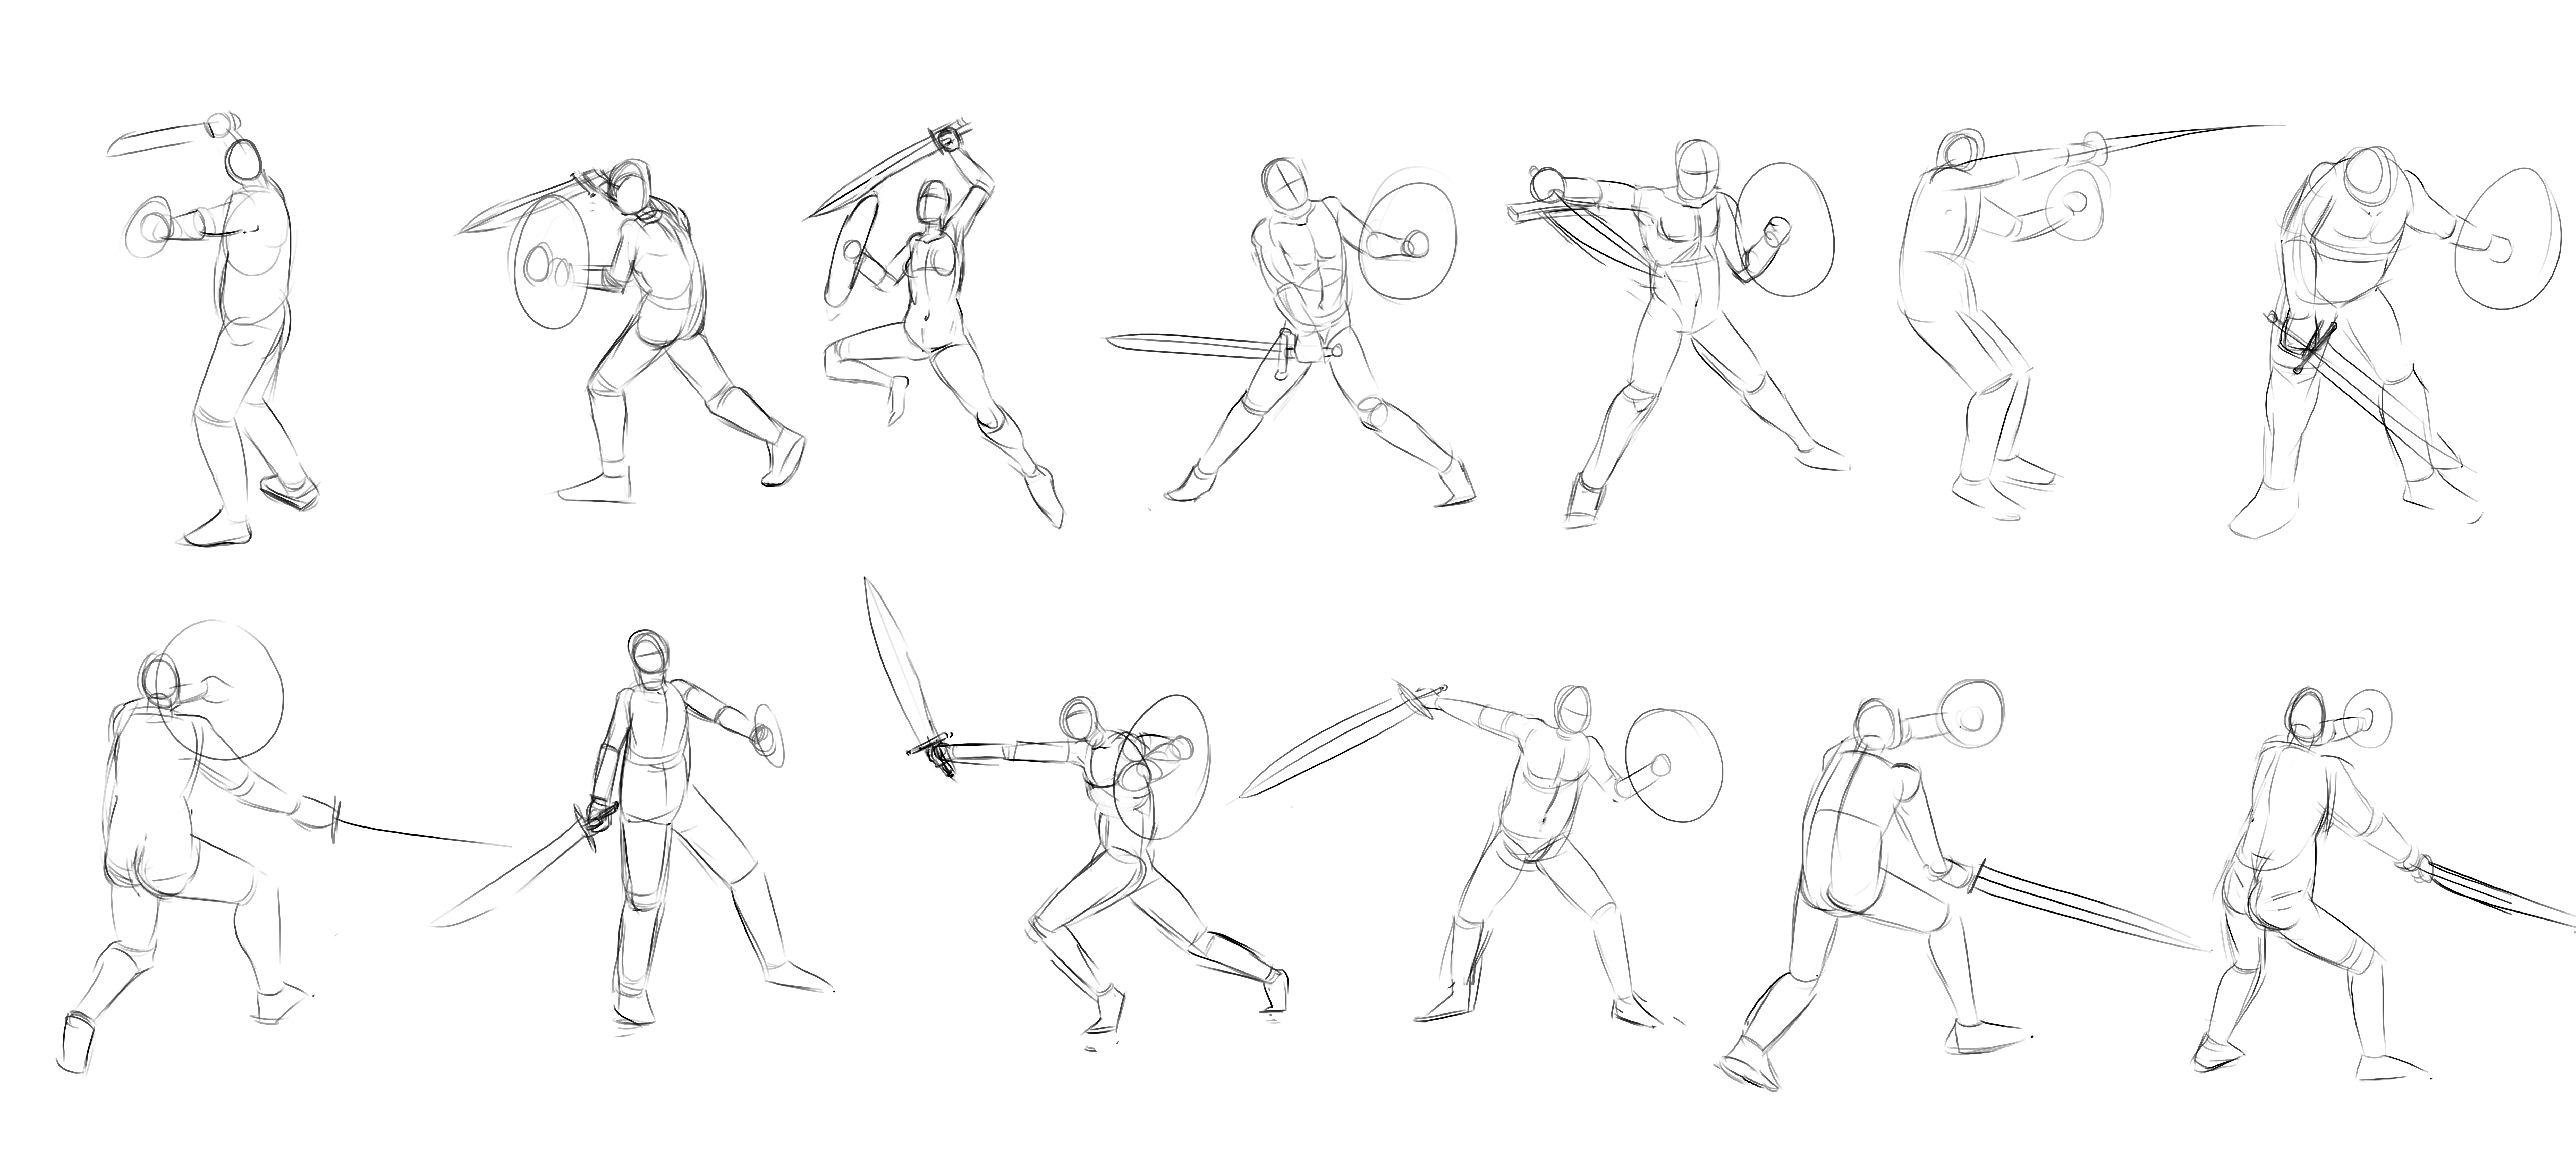 Sword and Shield poses by TimothyWilson on DeviantArt